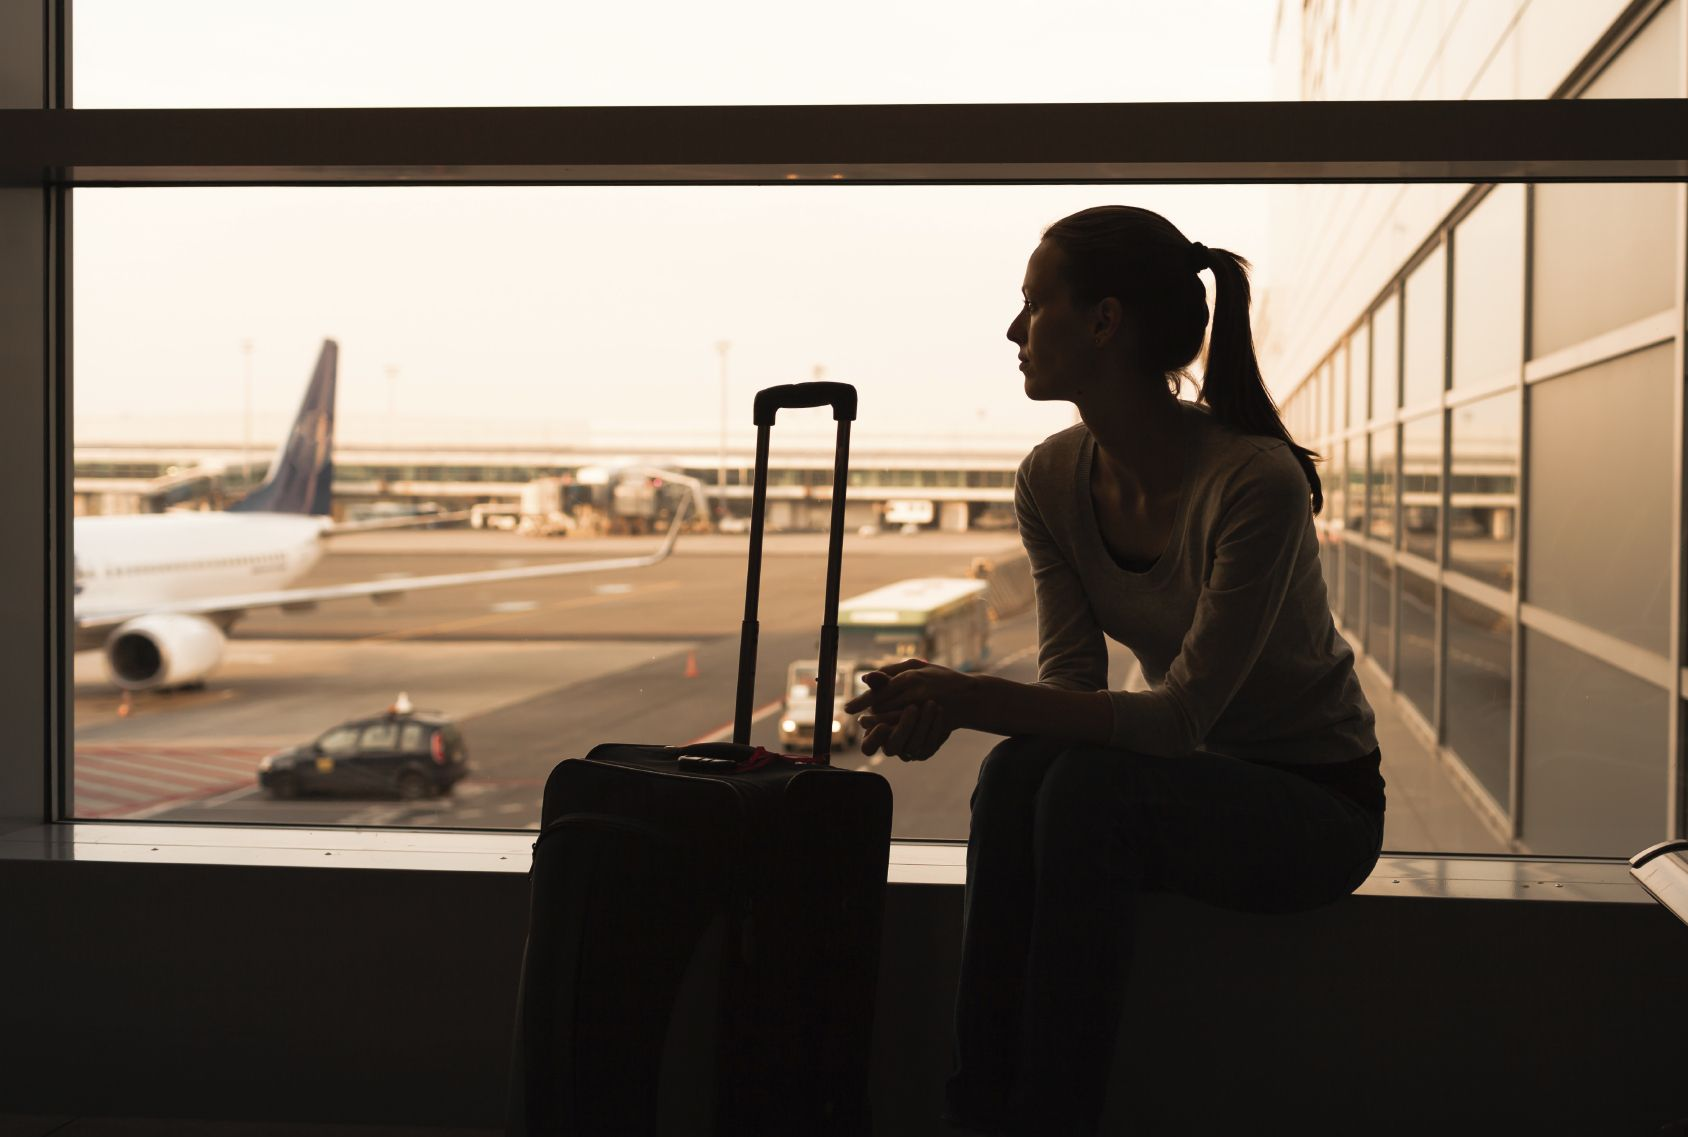 A woman with her suitcase looking at the window in an airport